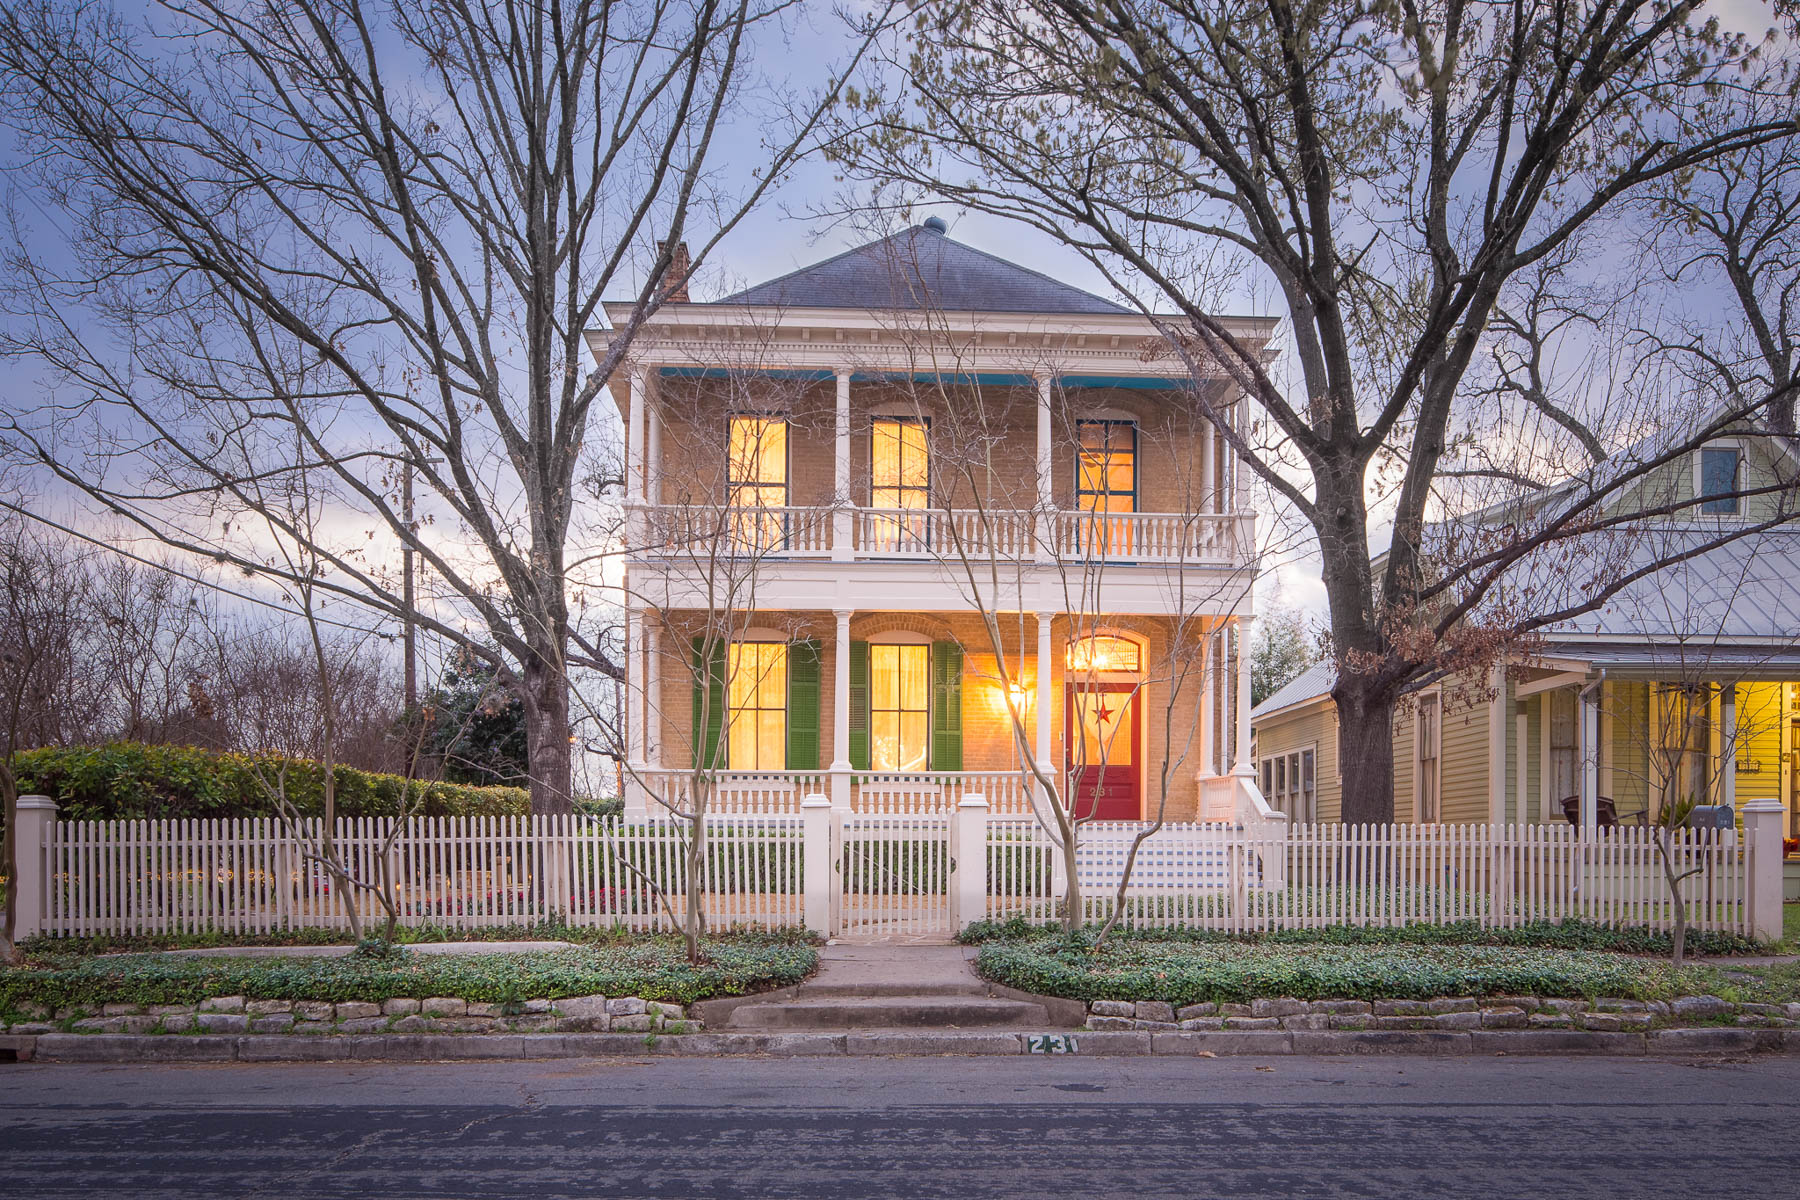 Single Family Home for Sale at Piece of Historical Architecture in King William 231 Adams St King William, San Antonio, Texas, 78210 United States